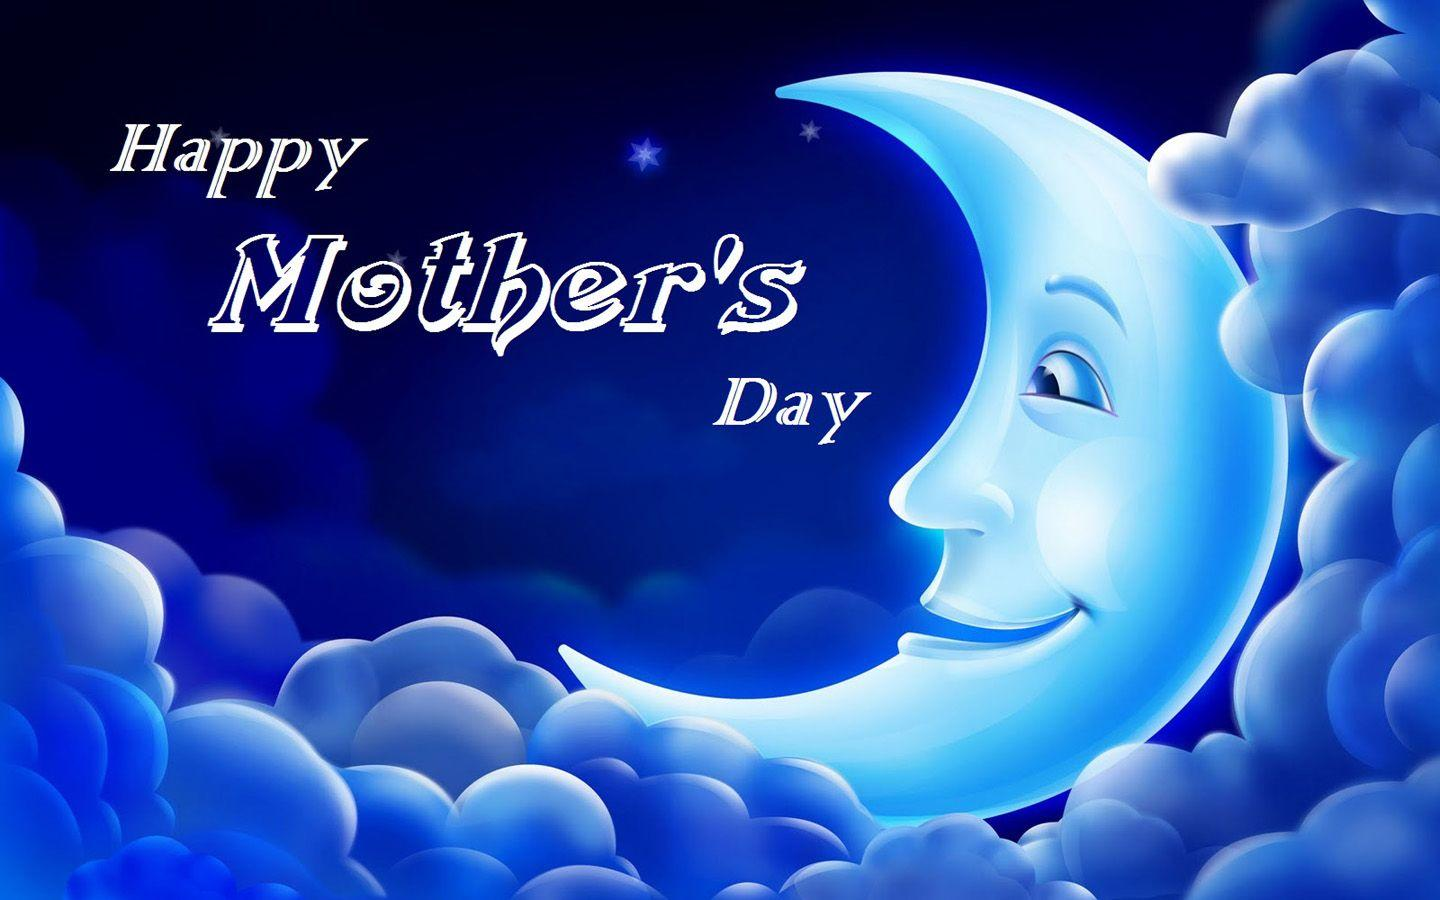 14 Happy Mother's Day Wallpaper Background 2017 - | Mother's Day